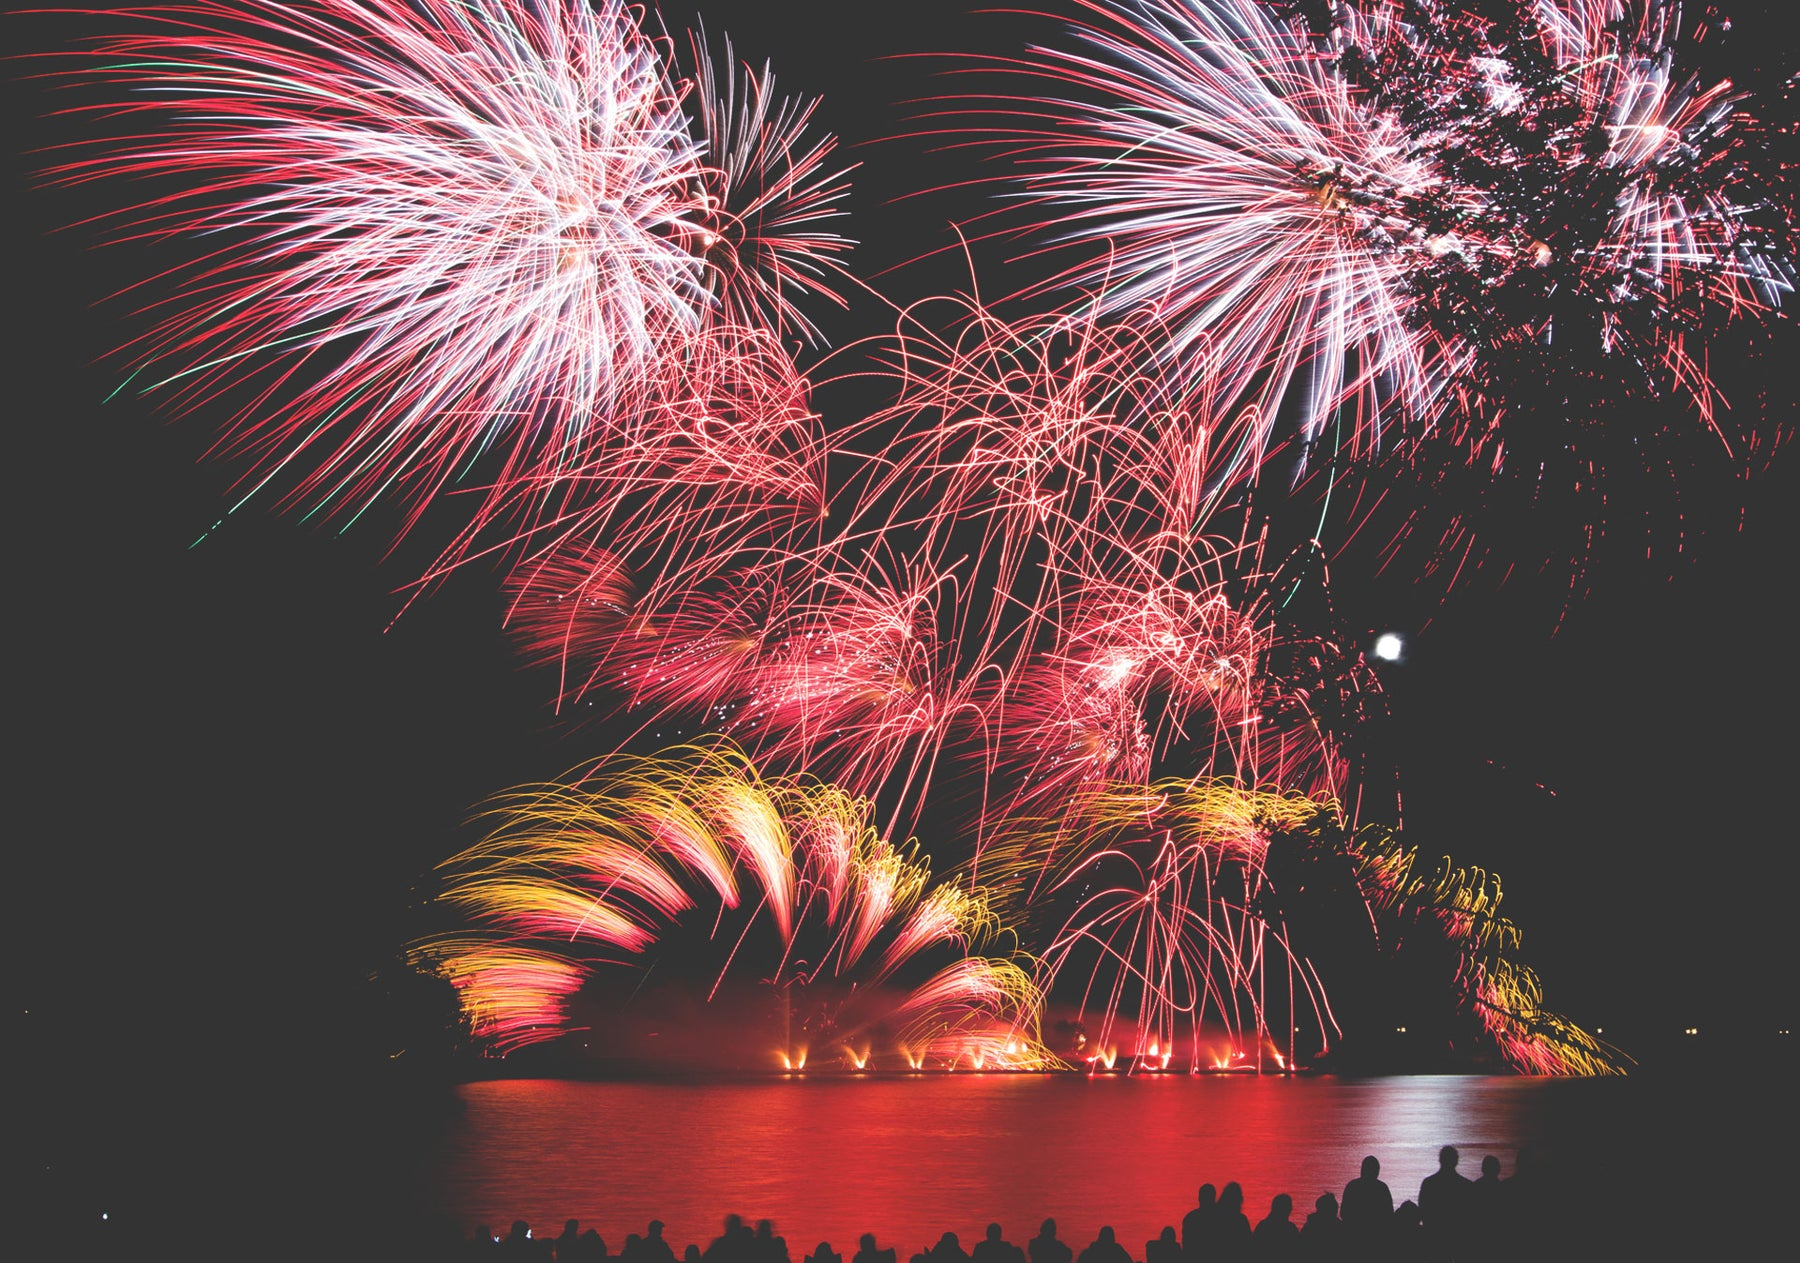 GLOBALFEST INTERNATIONAL FIREWORKS FESTIVAL 2018